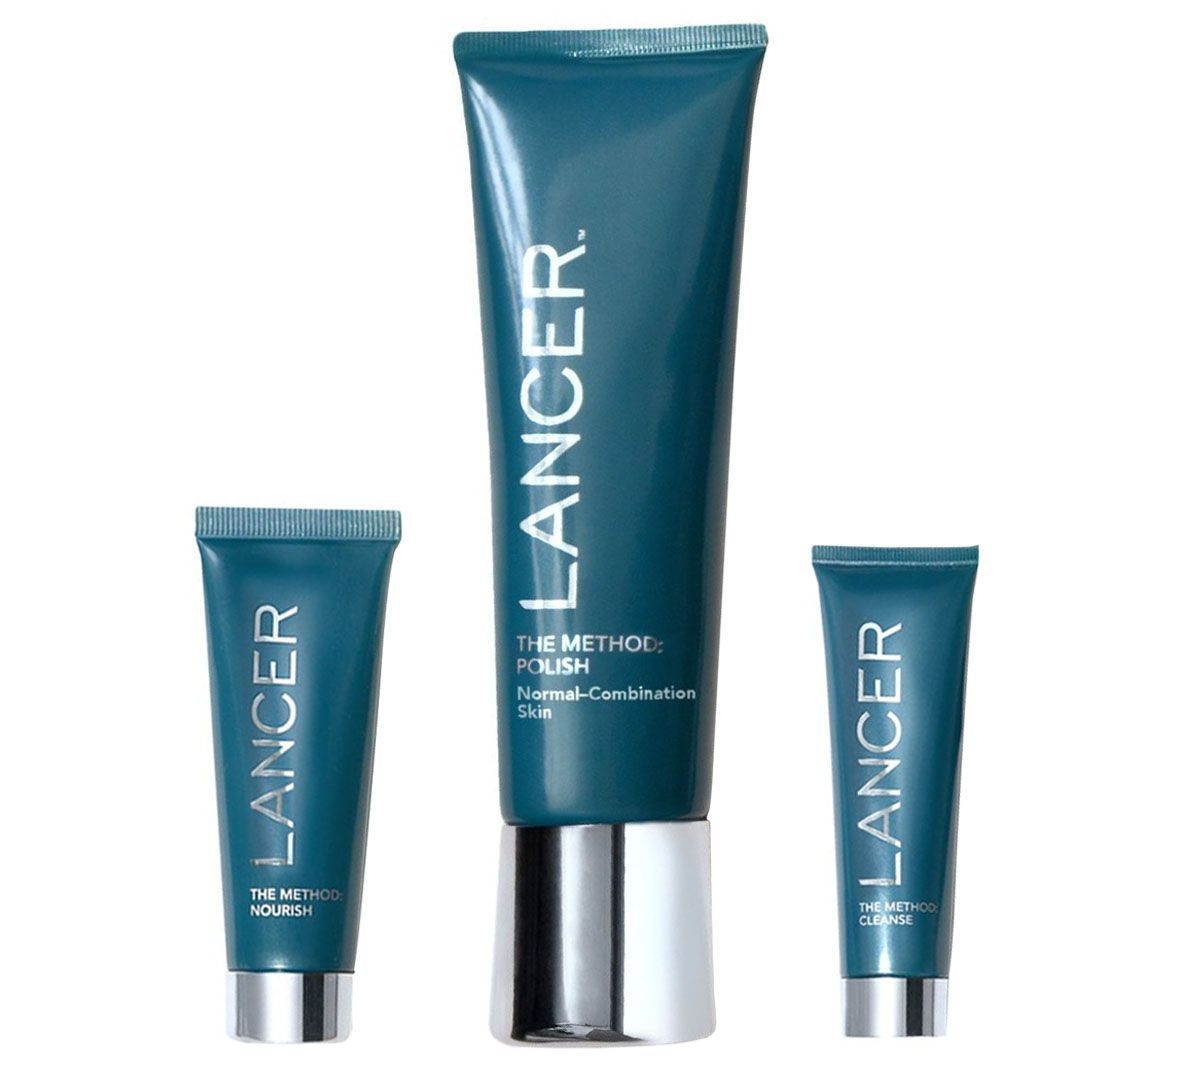 Pin By Jessica Pratt On Products Lancer Skincare Cleanse Skin Care System